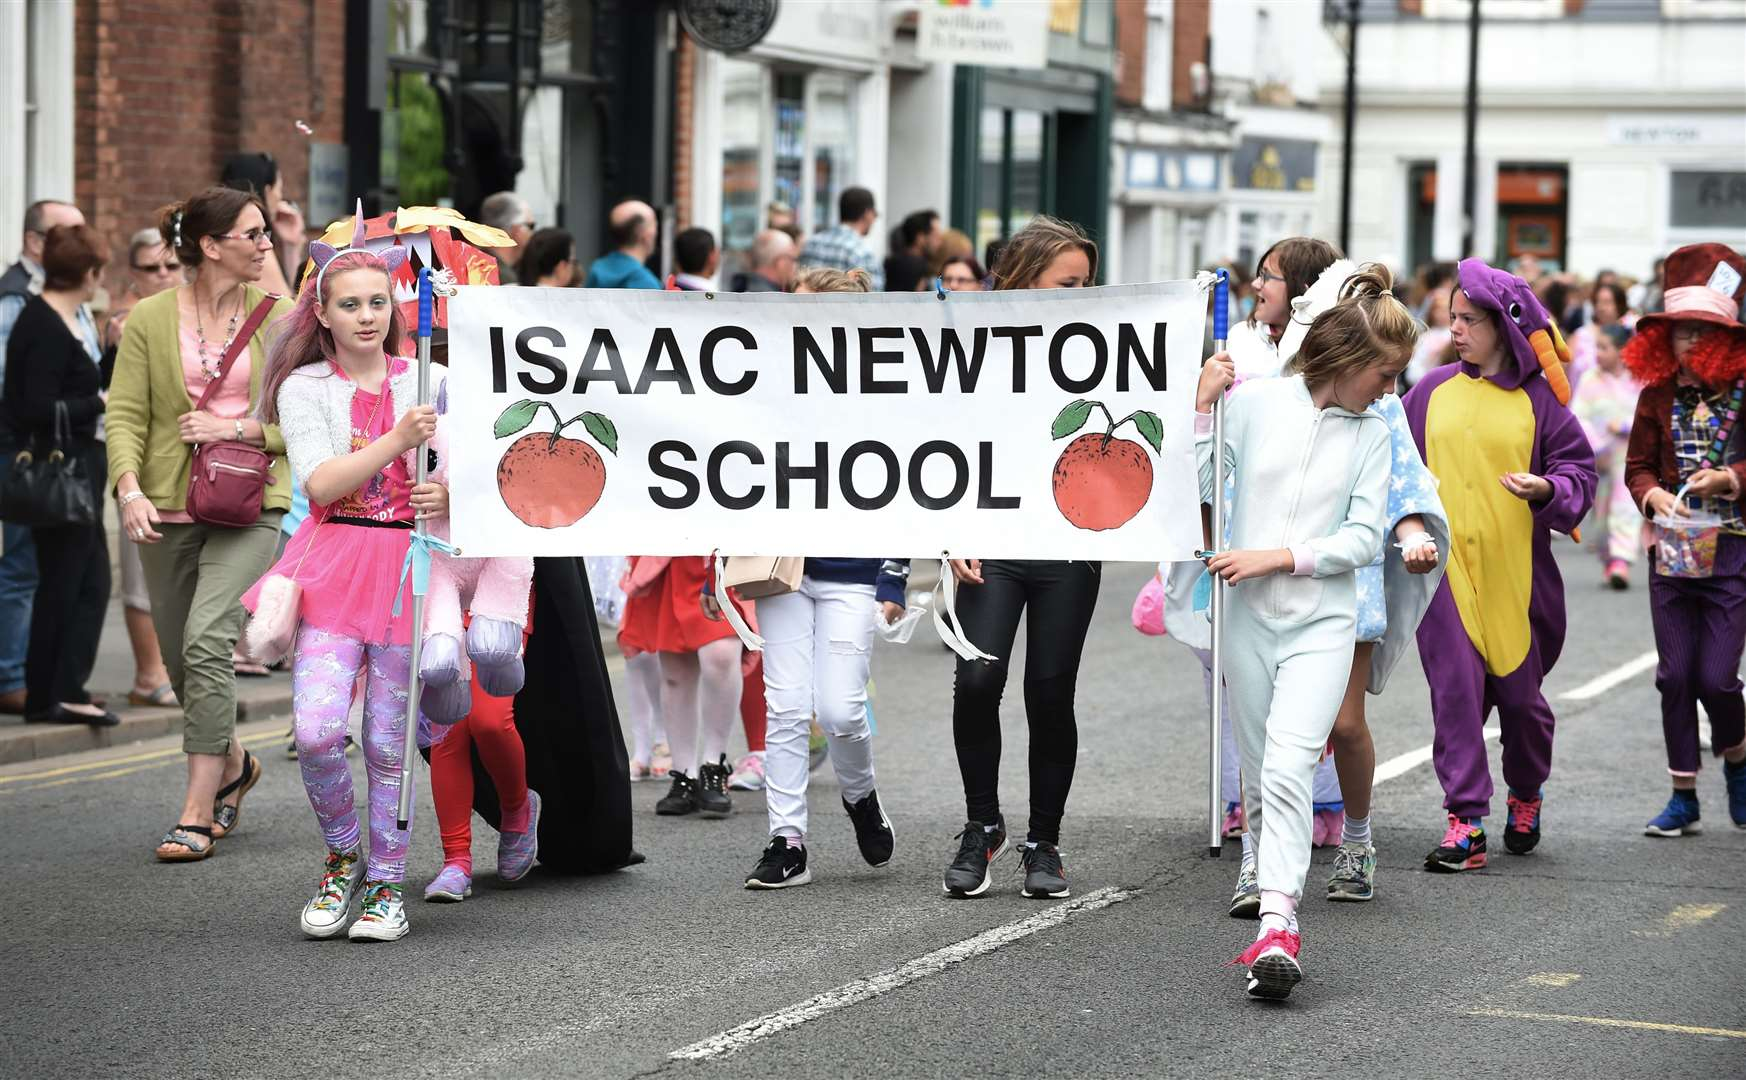 Isaac Newton primary School in the Grantham Carnival parade. (2606355)